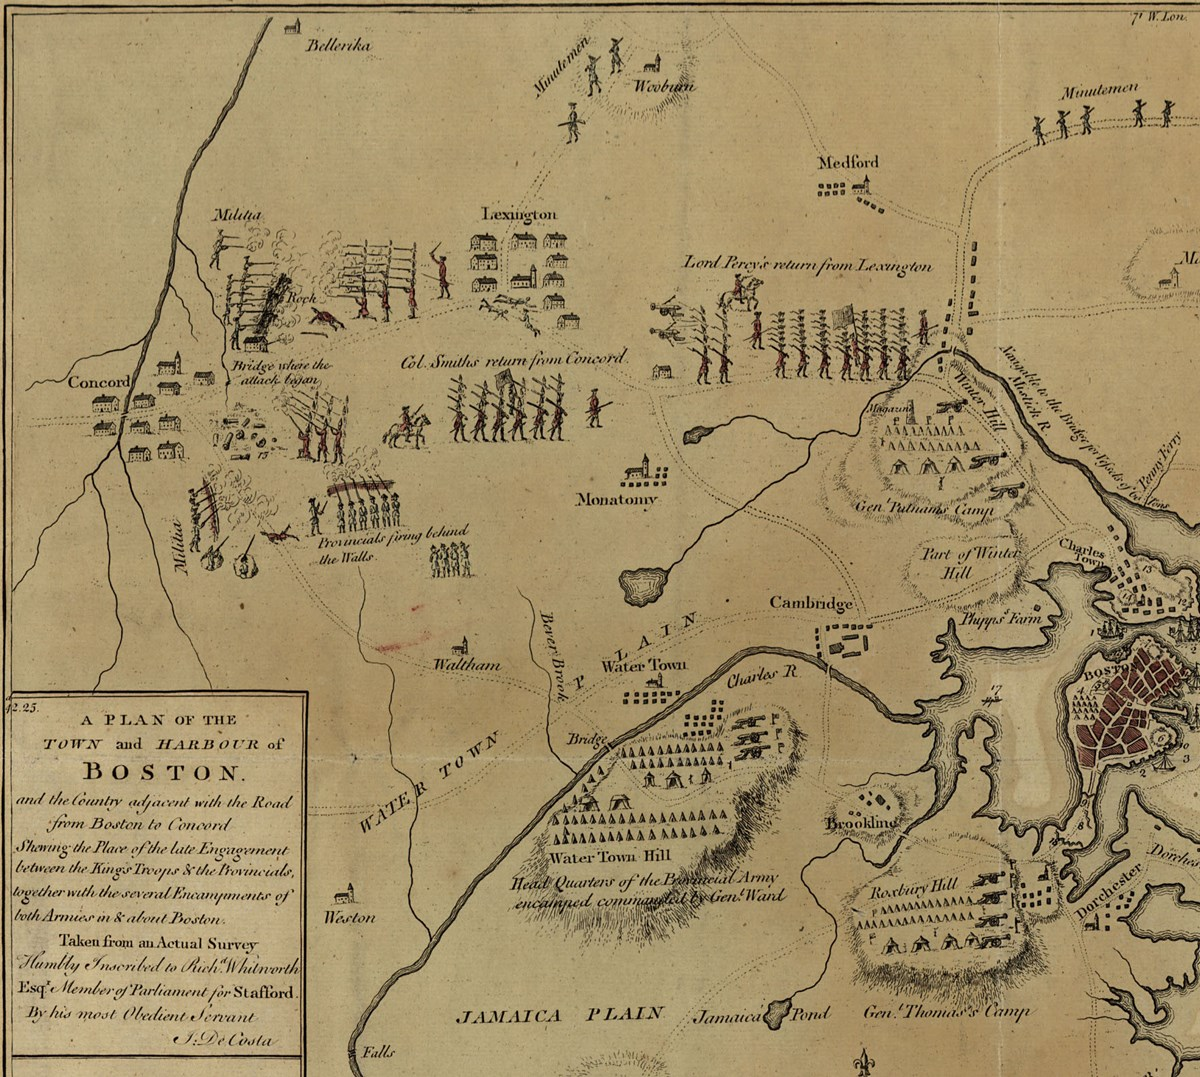 Old map of Boston and Concord.